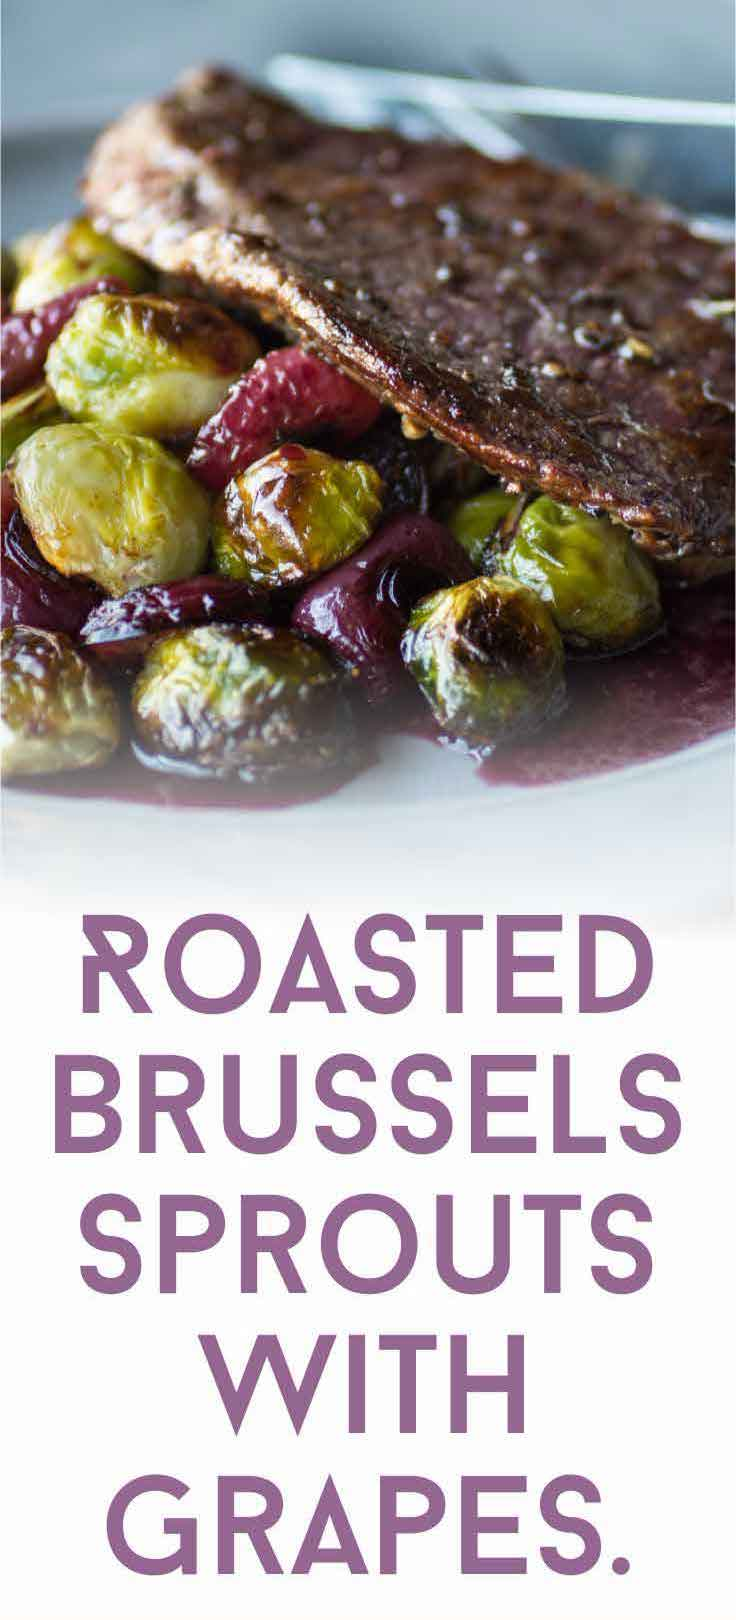 Roasting your Brussels sprouts brings out their sweet flavor! This roasted Brussels sprouts recipe is a delicious combination and it's so easy to prepare.